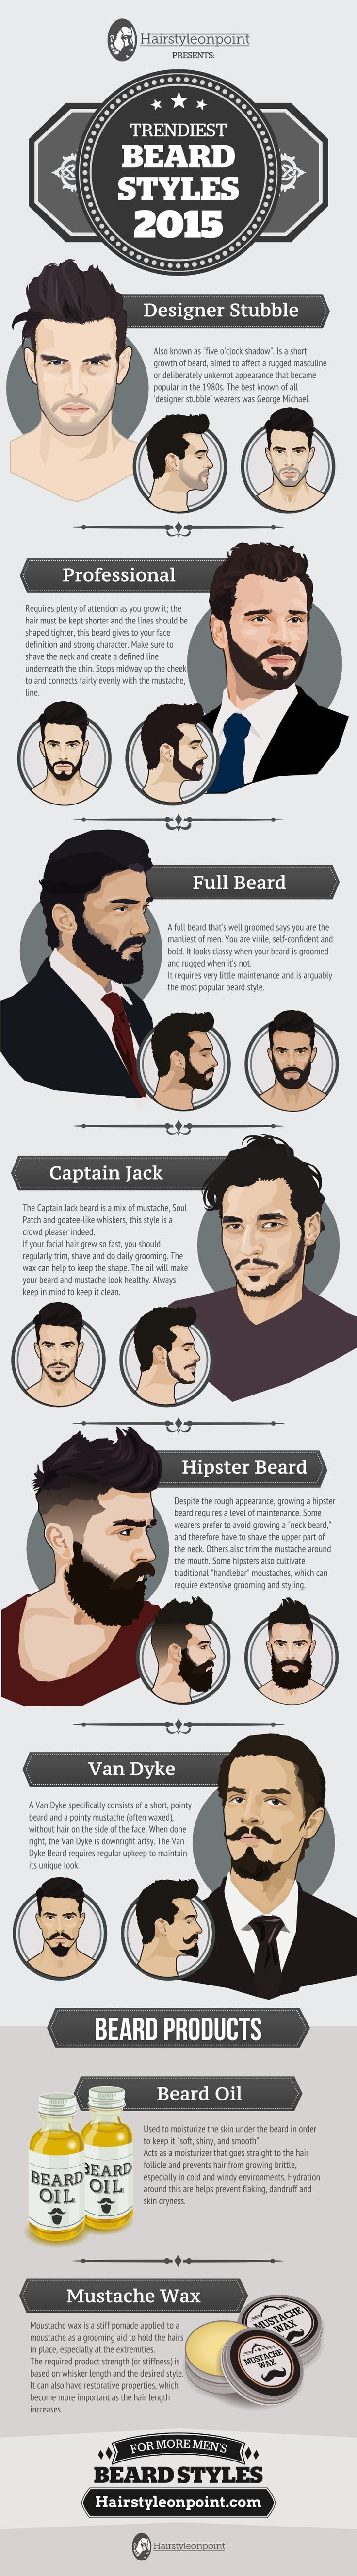 Trendiest Beard Styles 2015 - Imgur More amazing and unique hairstyles at…